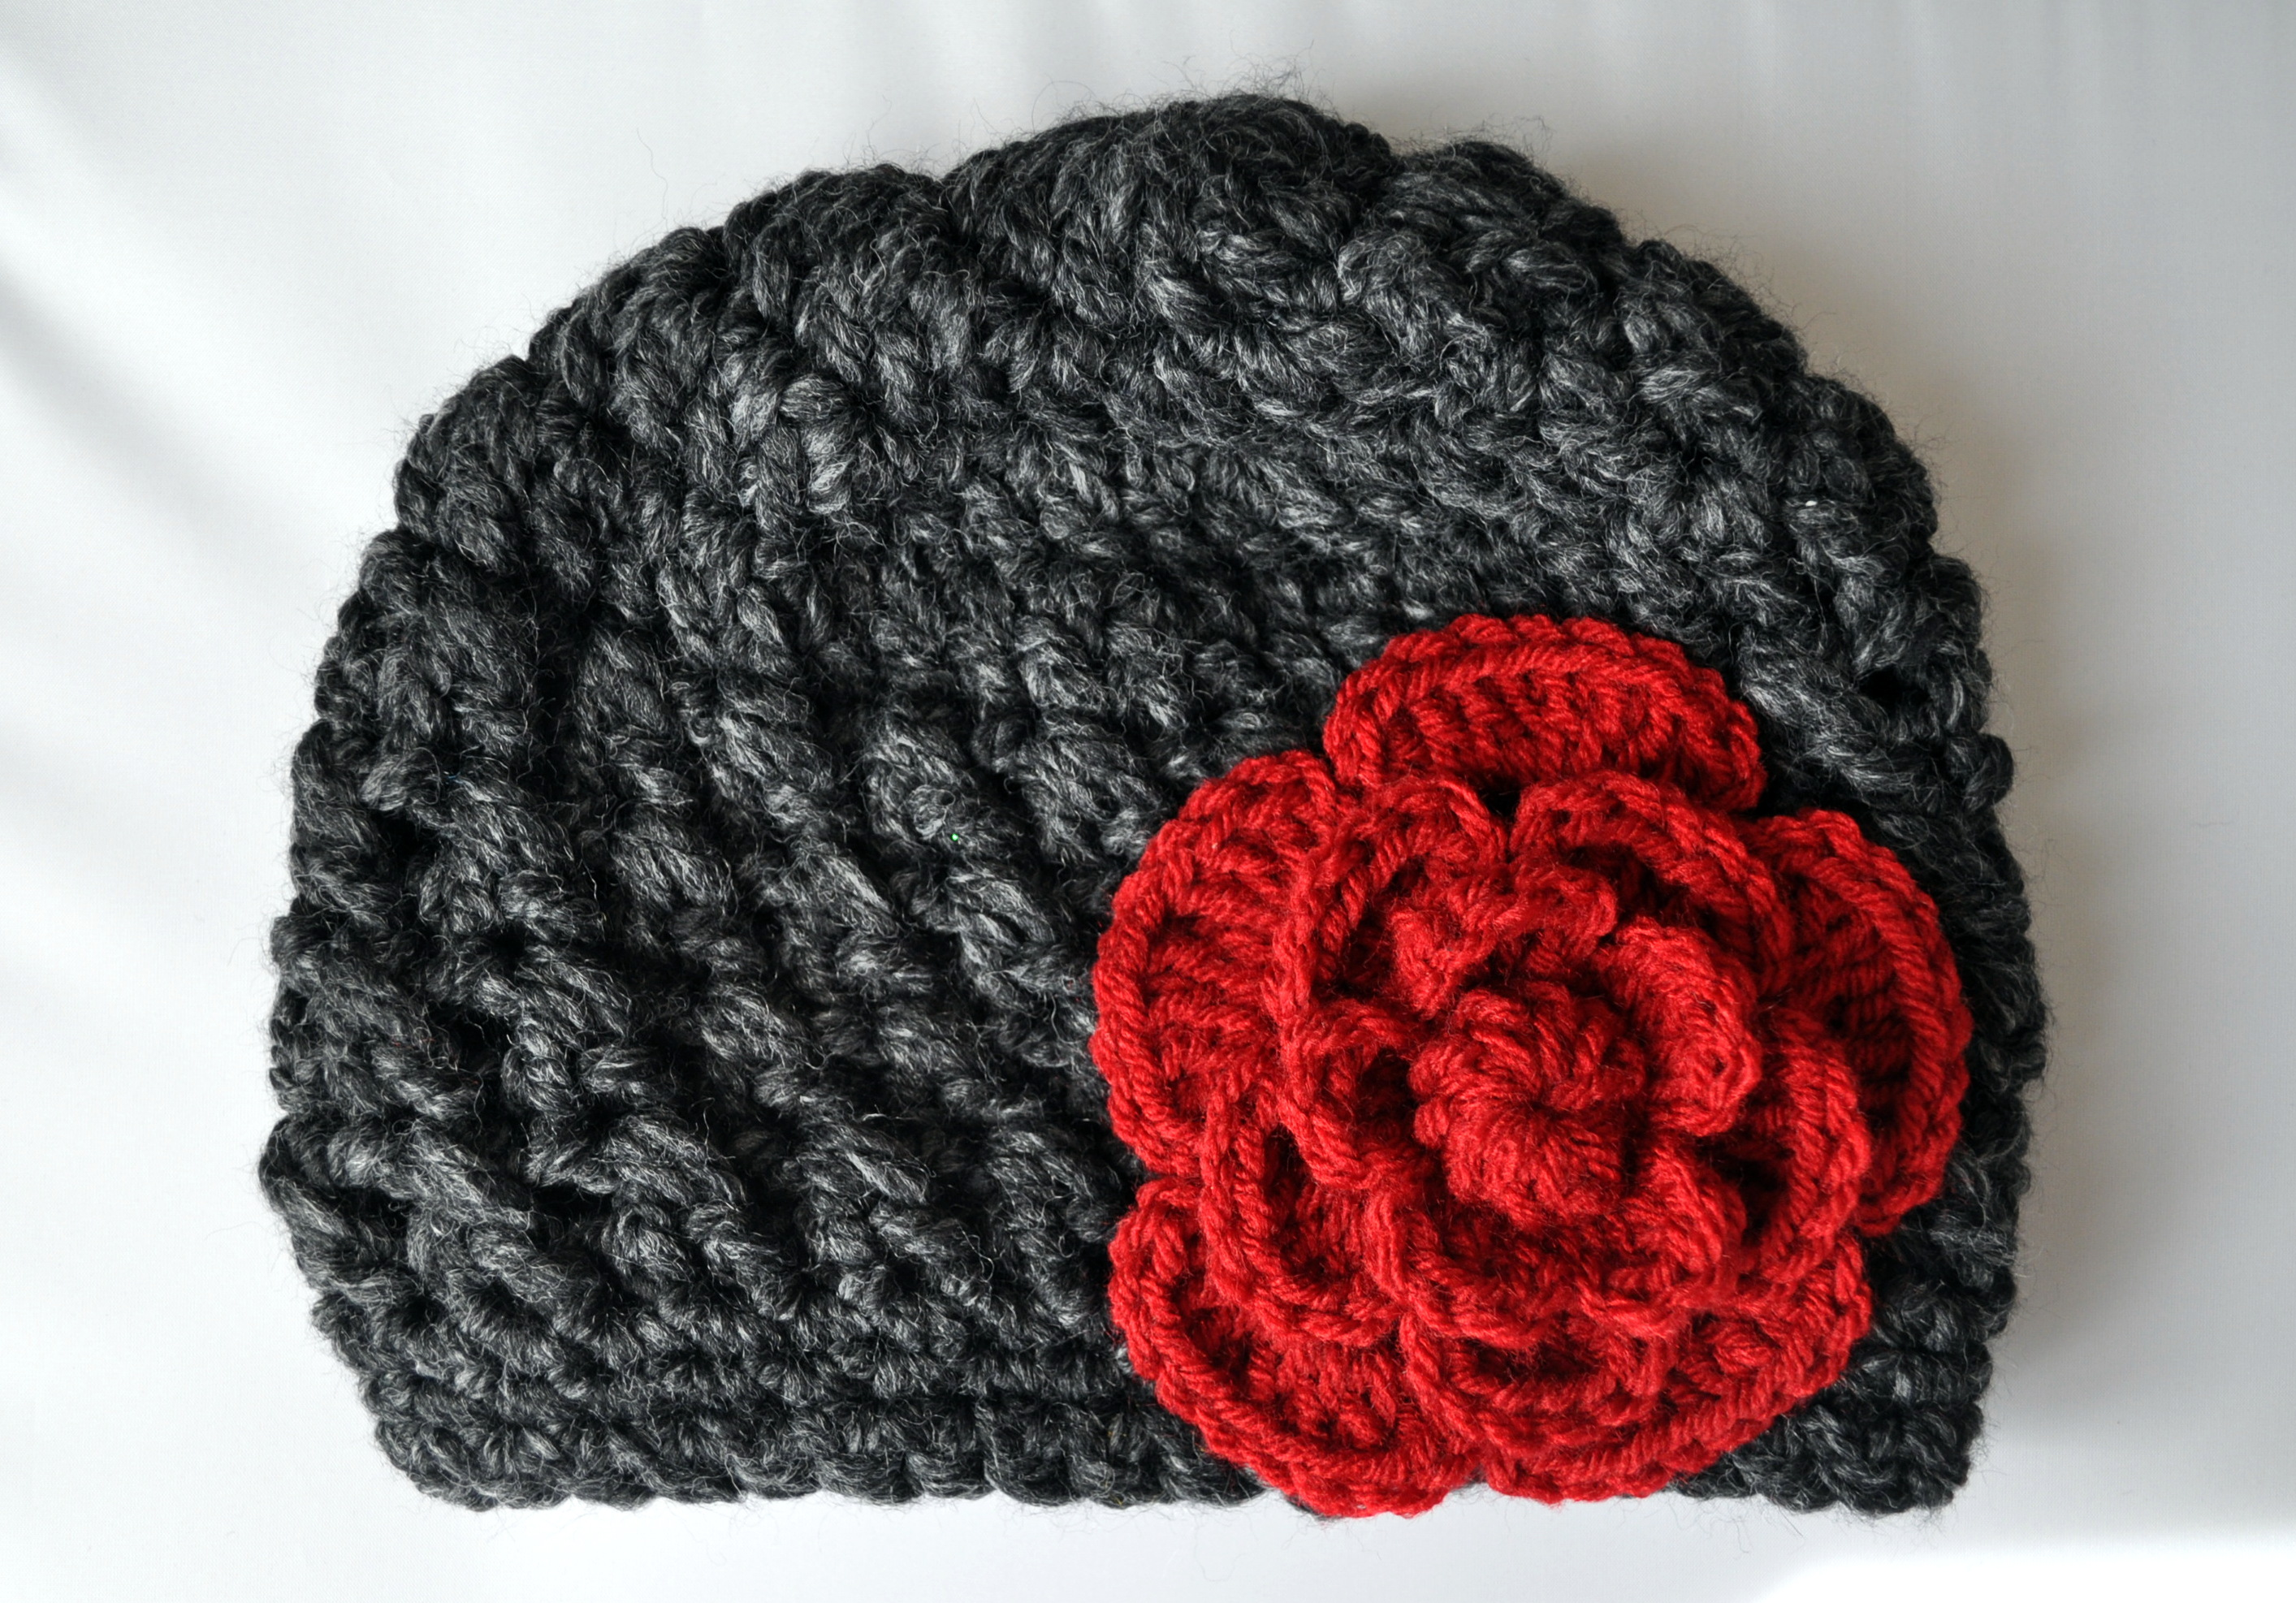 Free Crochet Pattern Chunky Baby Hat : Crochet Chunky Flowered Cloche Pattern Classy Crochet